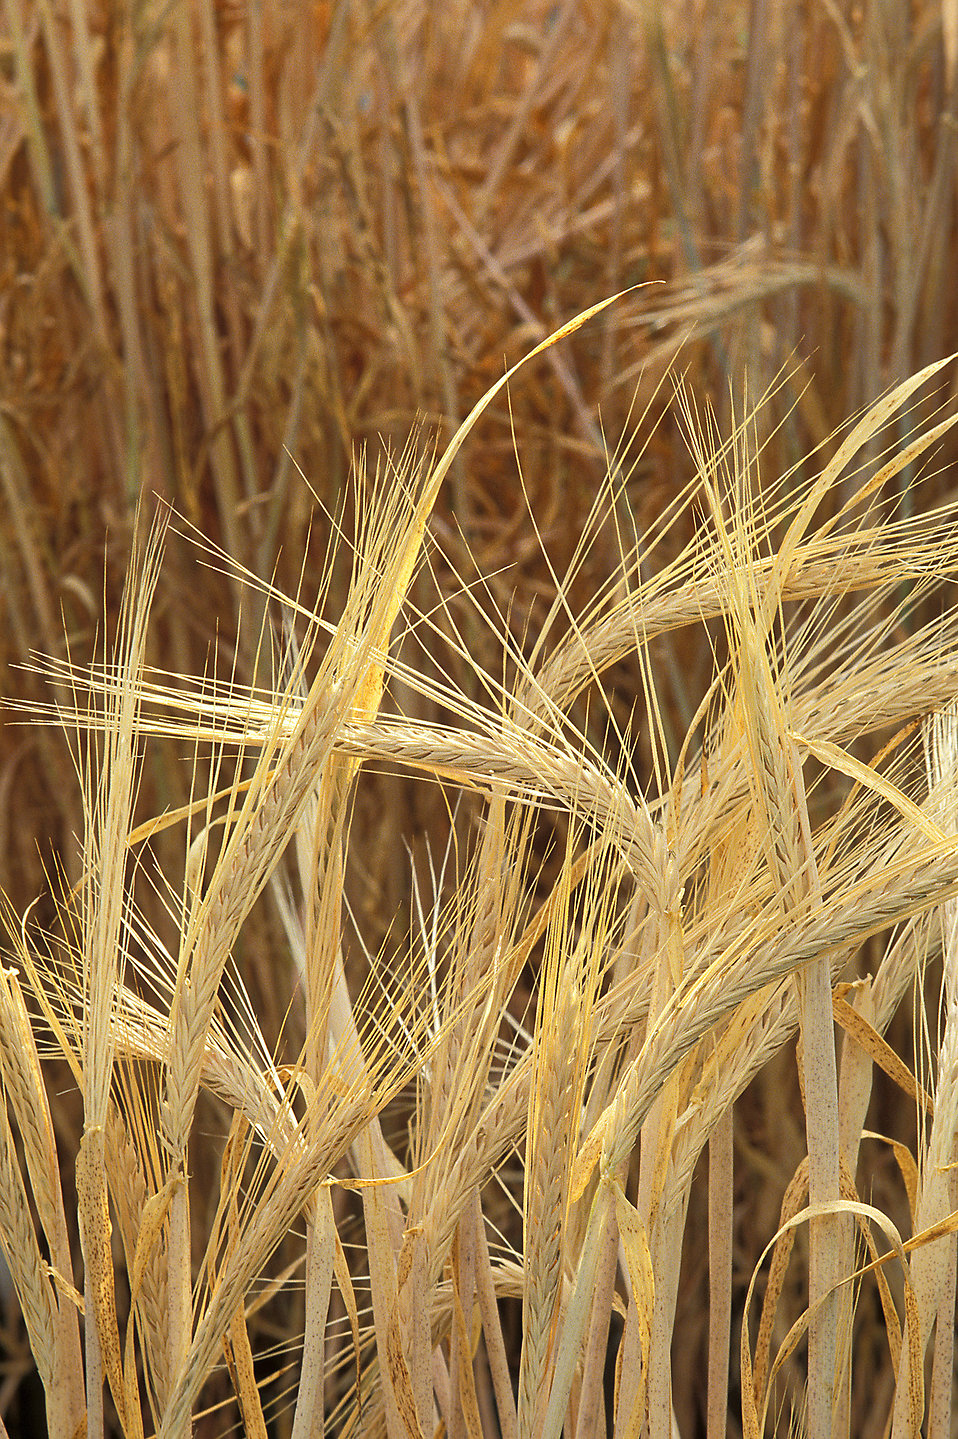 Close-up of barley growing in a field : Free Stock Photo